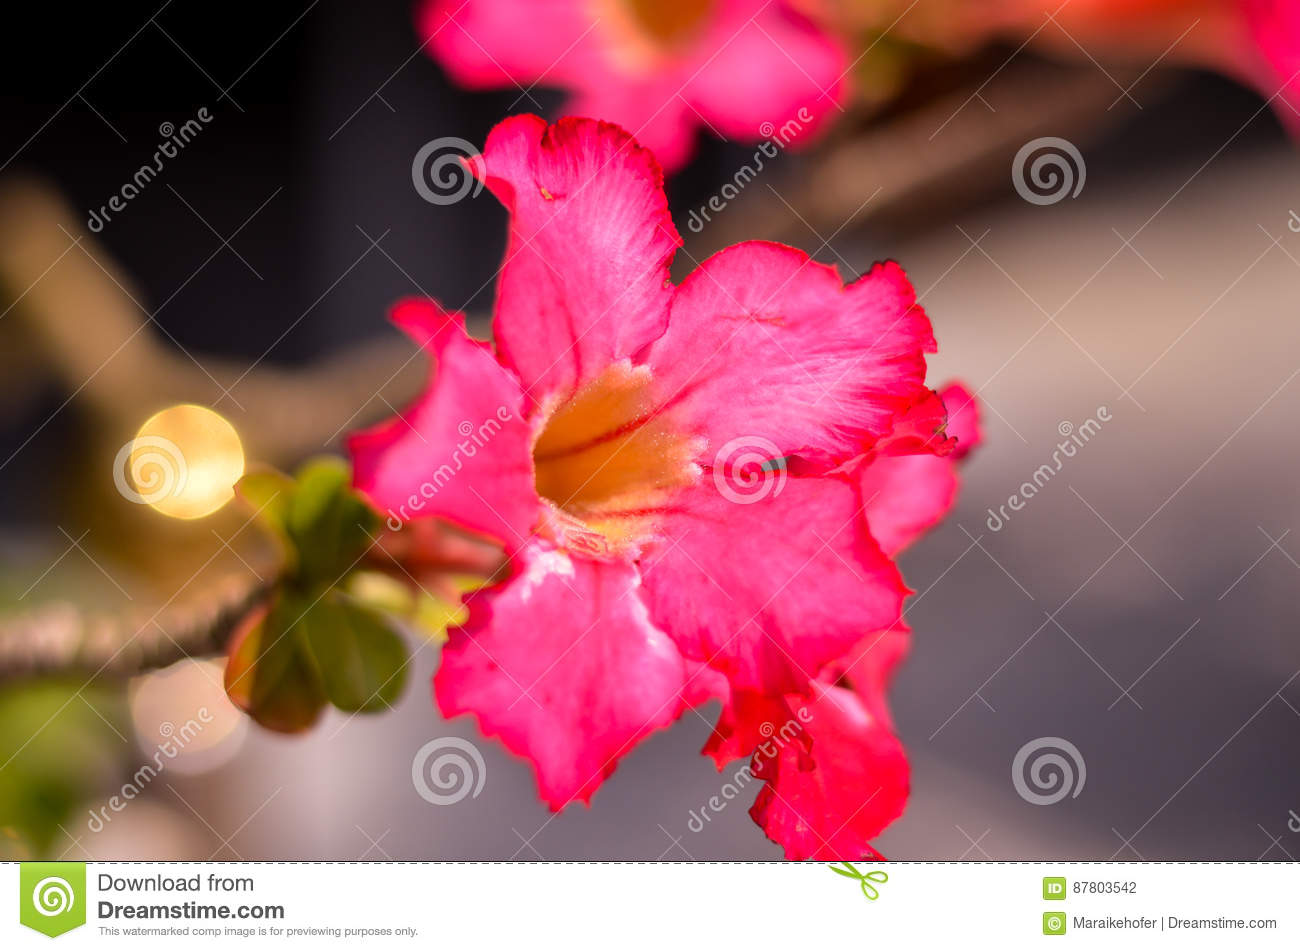 Desert Rose Beautiful Flowers In The Garden Pink Color On The Bush